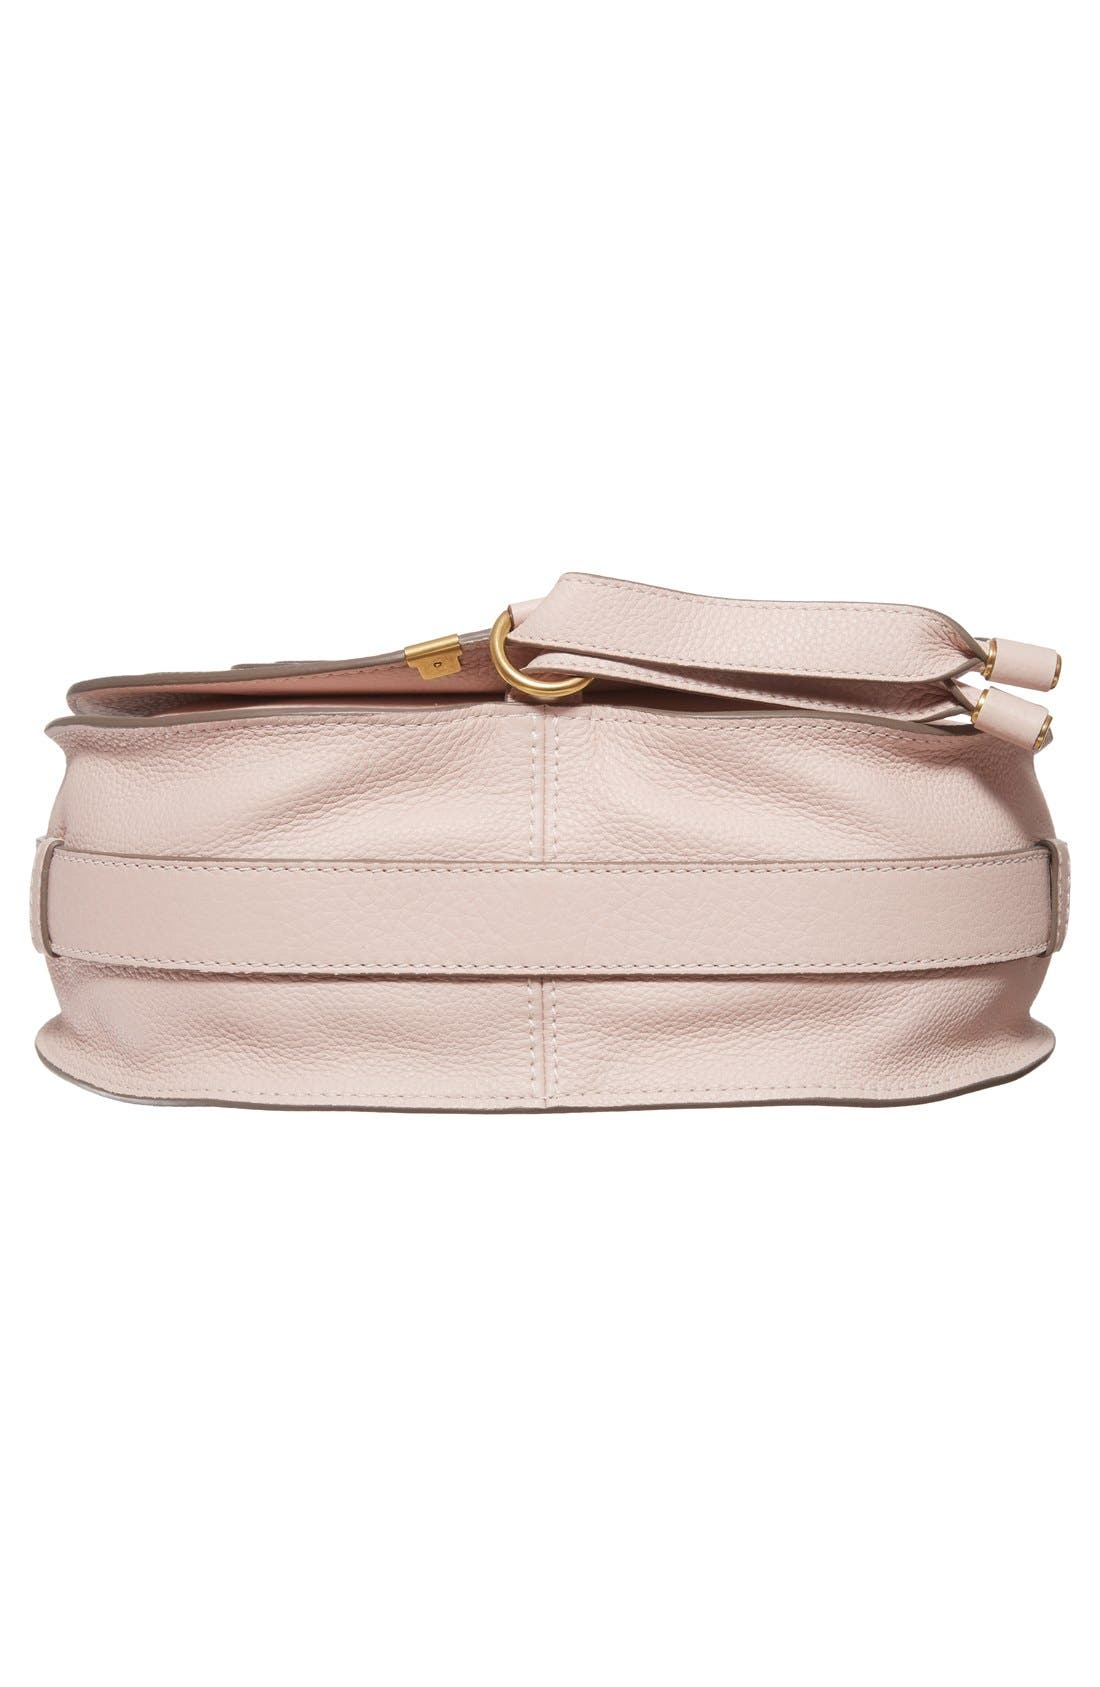 'Marcie - Medium' Leather Crossbody Bag,                             Alternate thumbnail 6, color,                             Abstract White